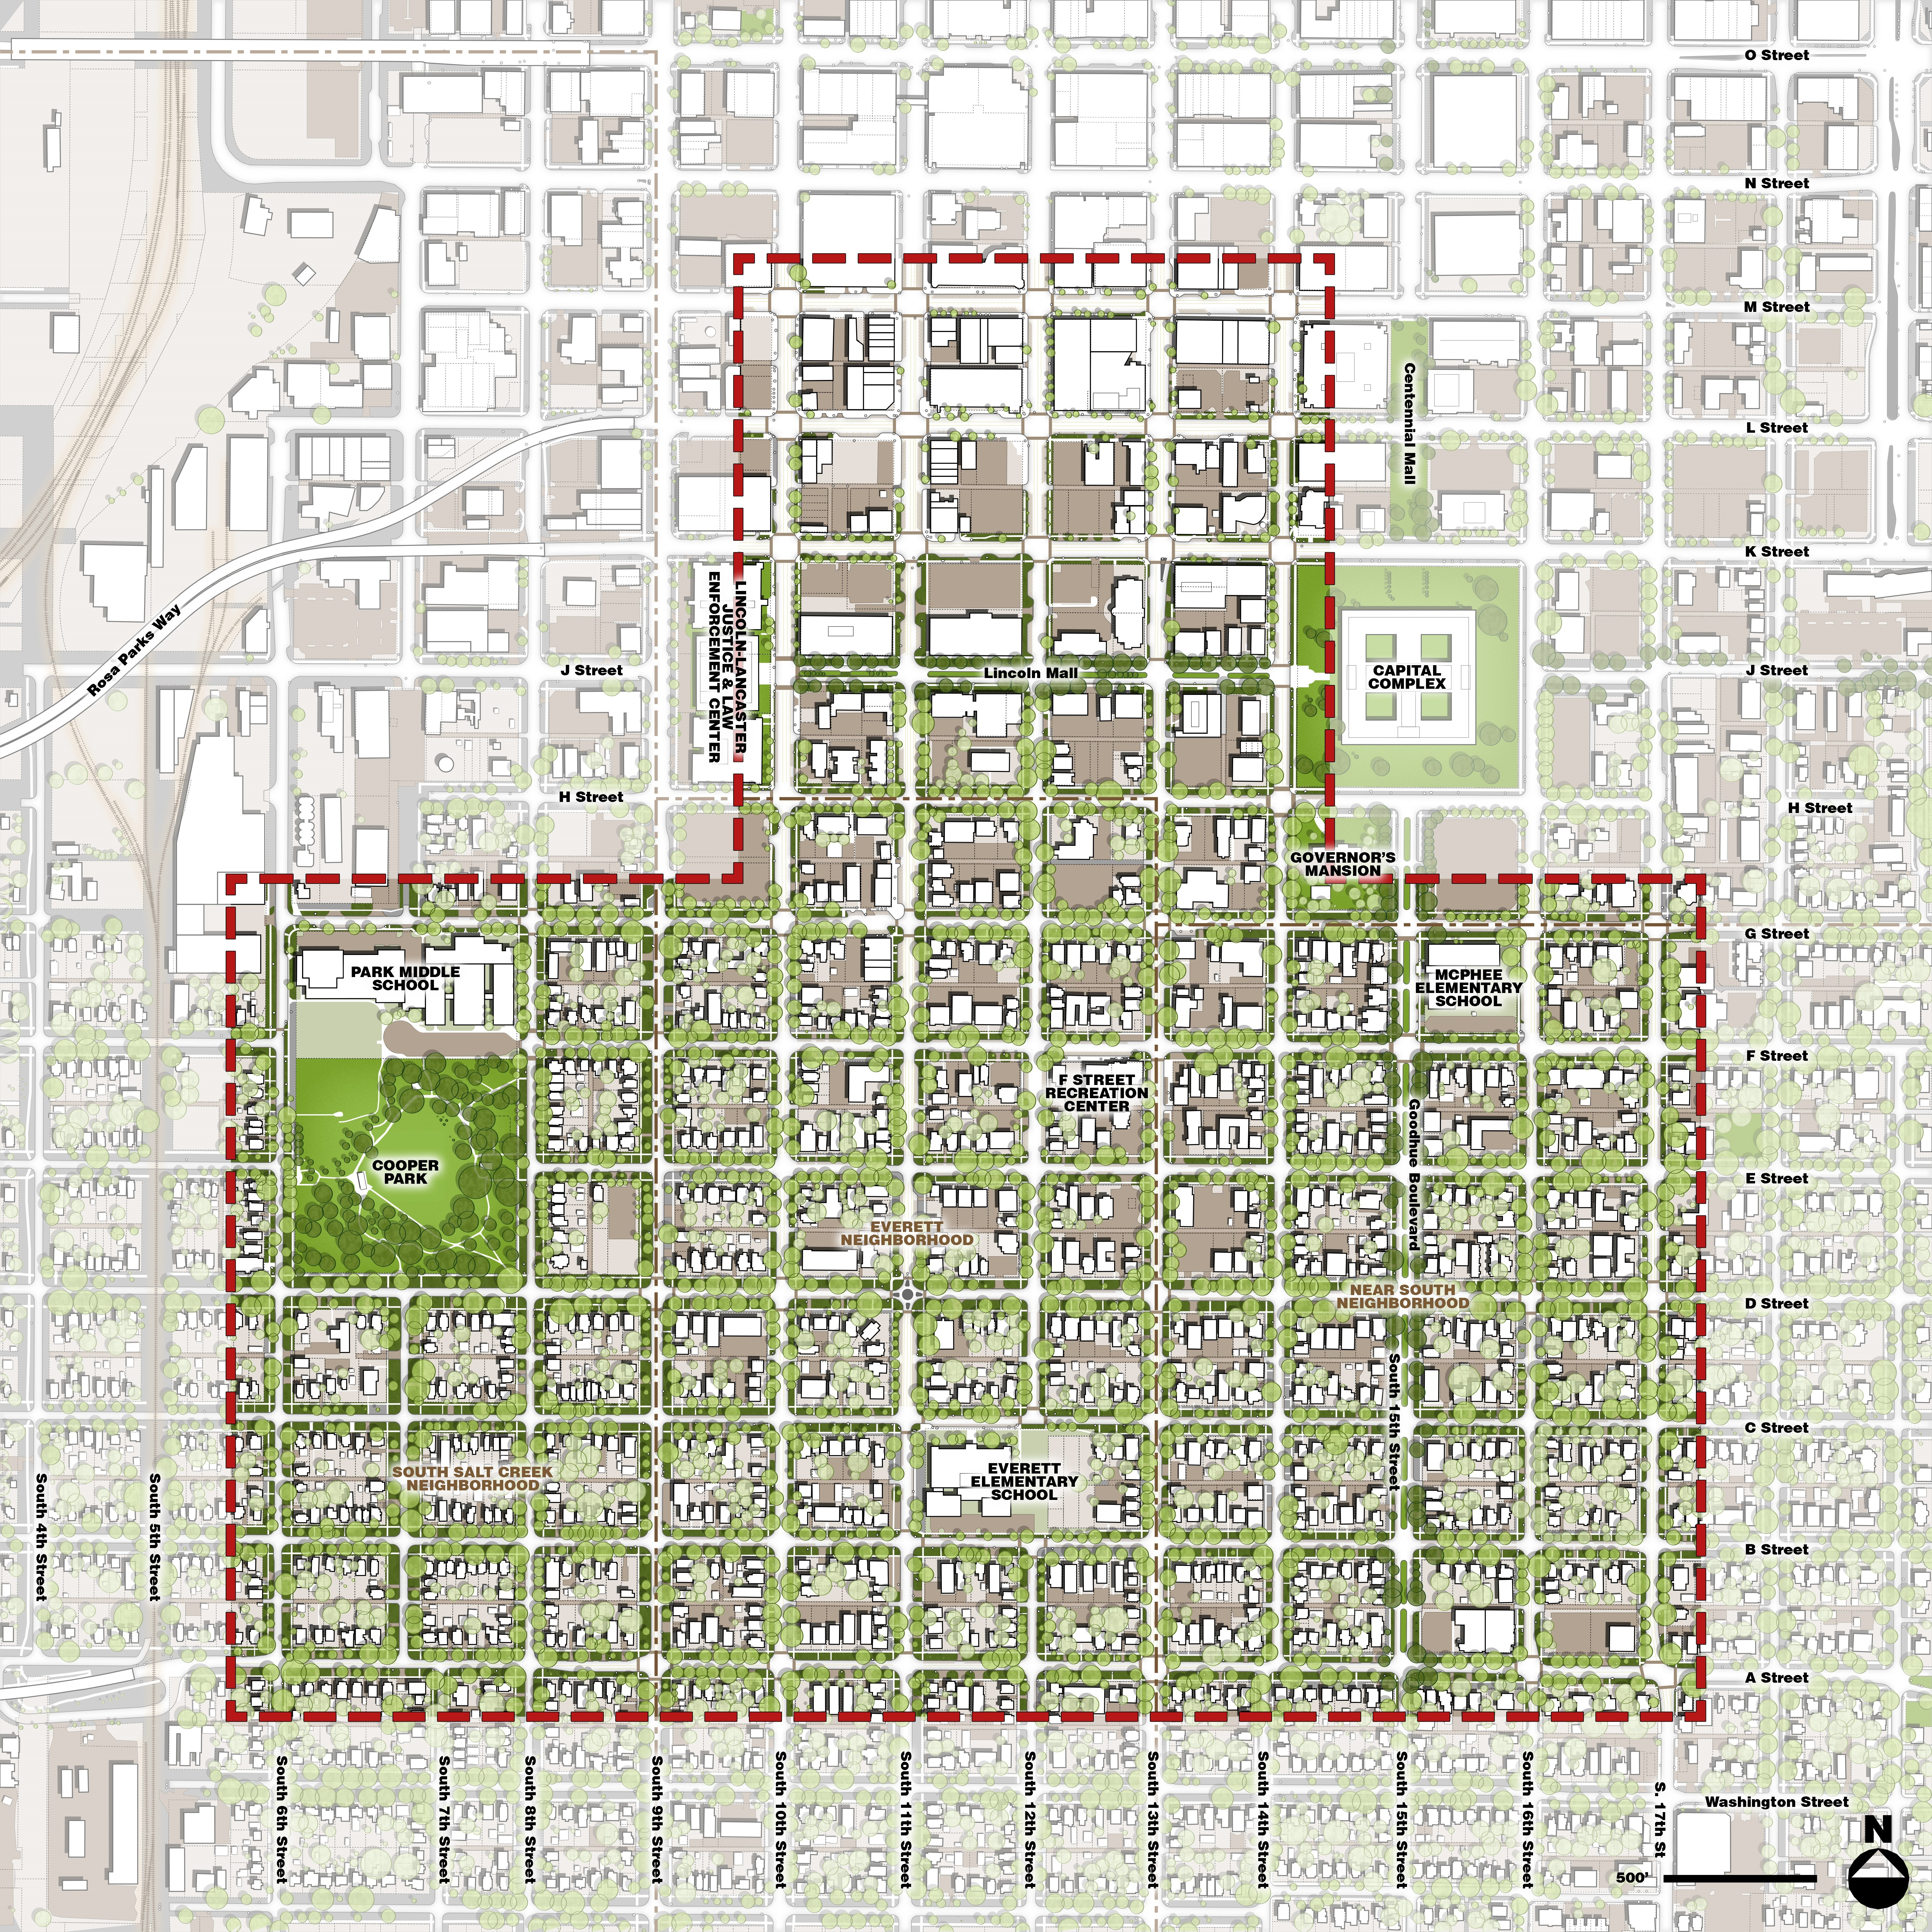 About This Site Lincoln South Downtown SoDo Revitalization Plan